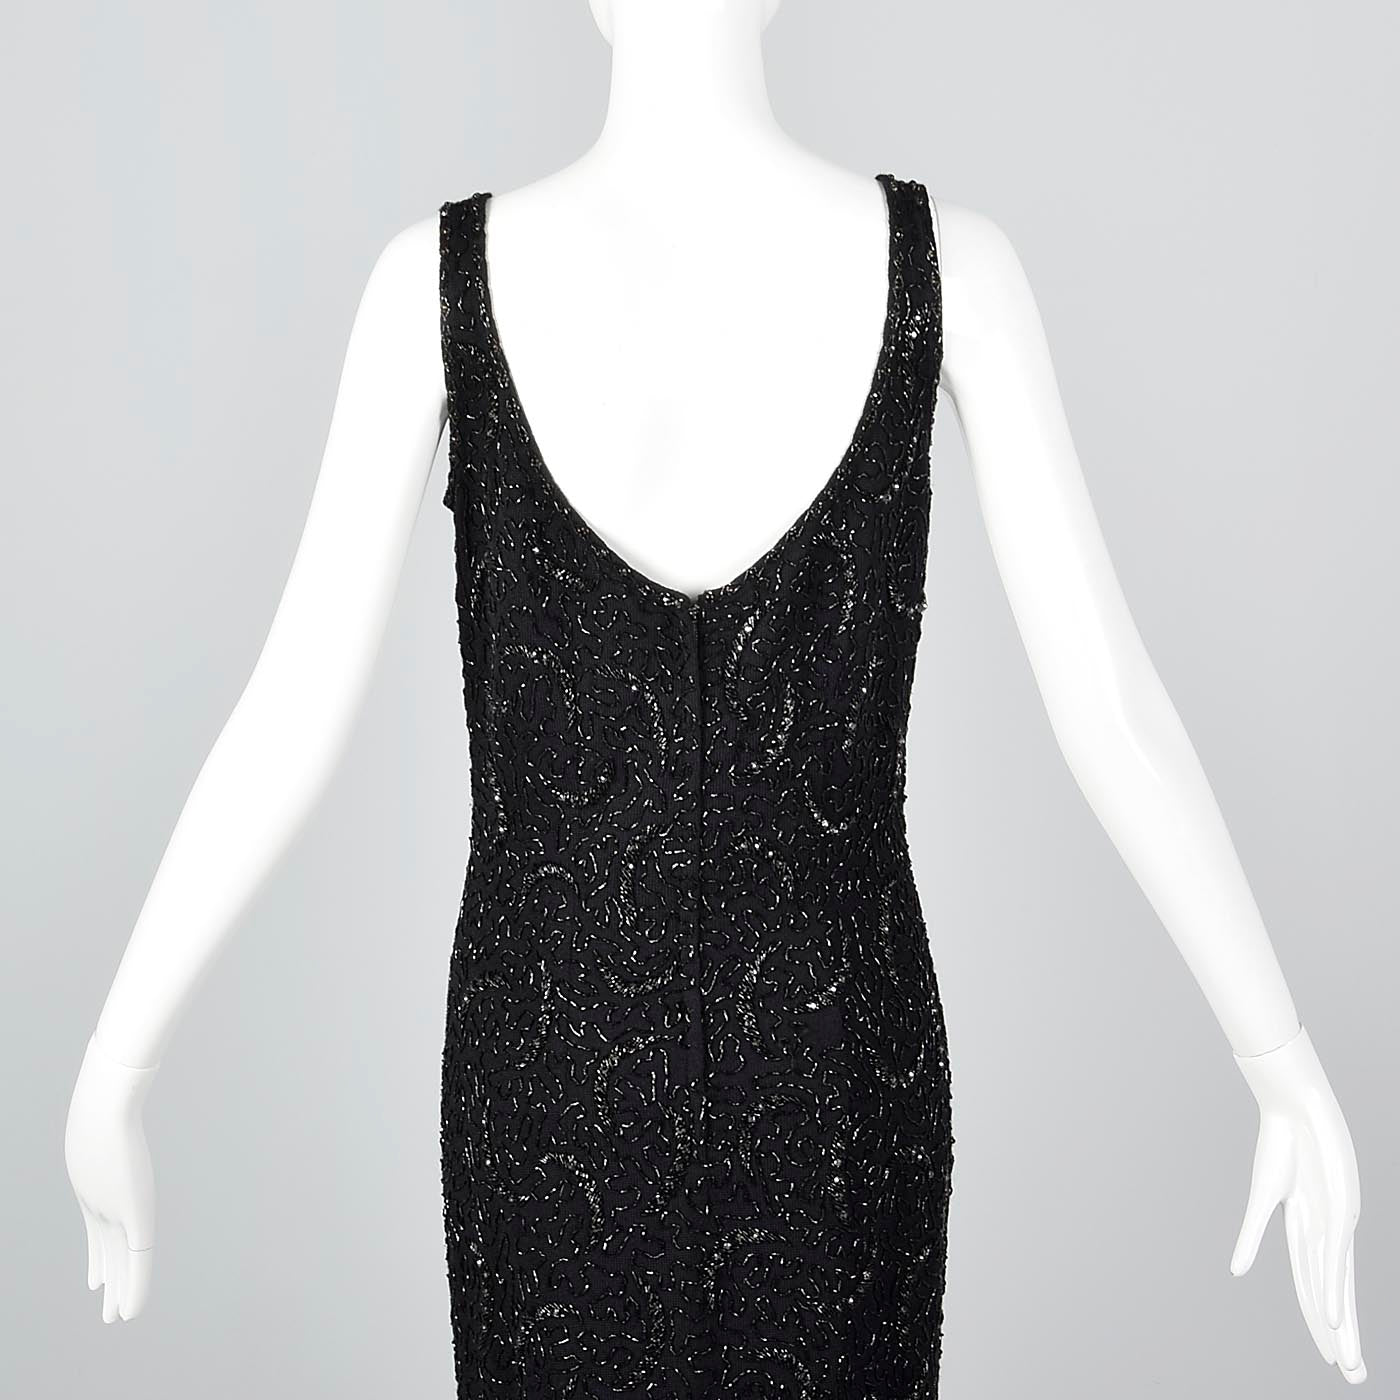 1960s Beaded Knit Full Length Evening Dress